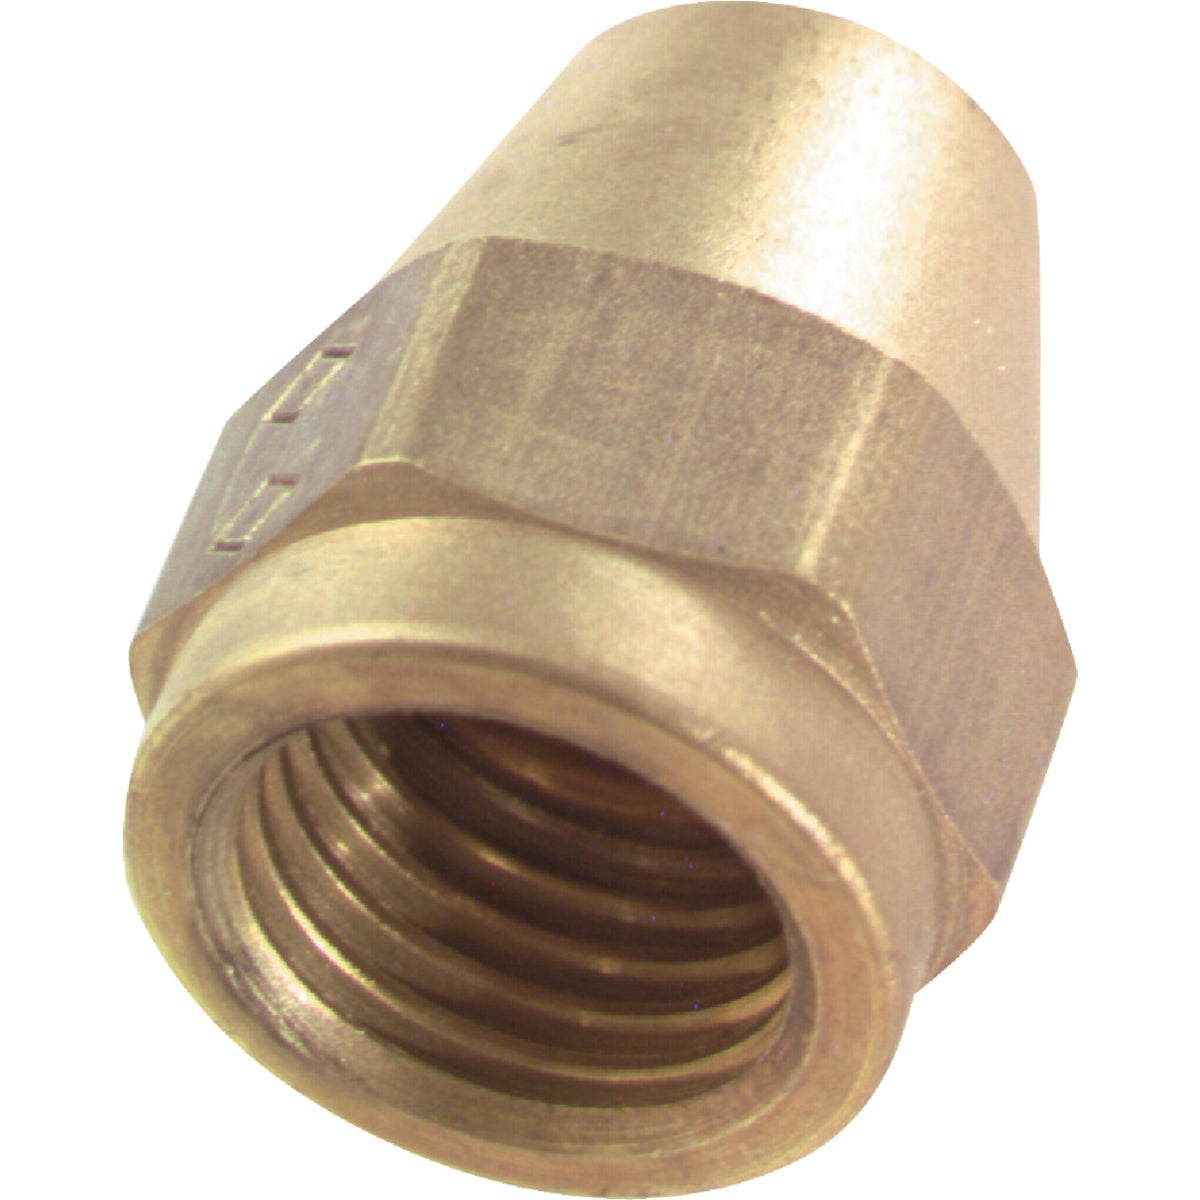 "1/4"" FLARE NUT - 458640 by Do it Best"